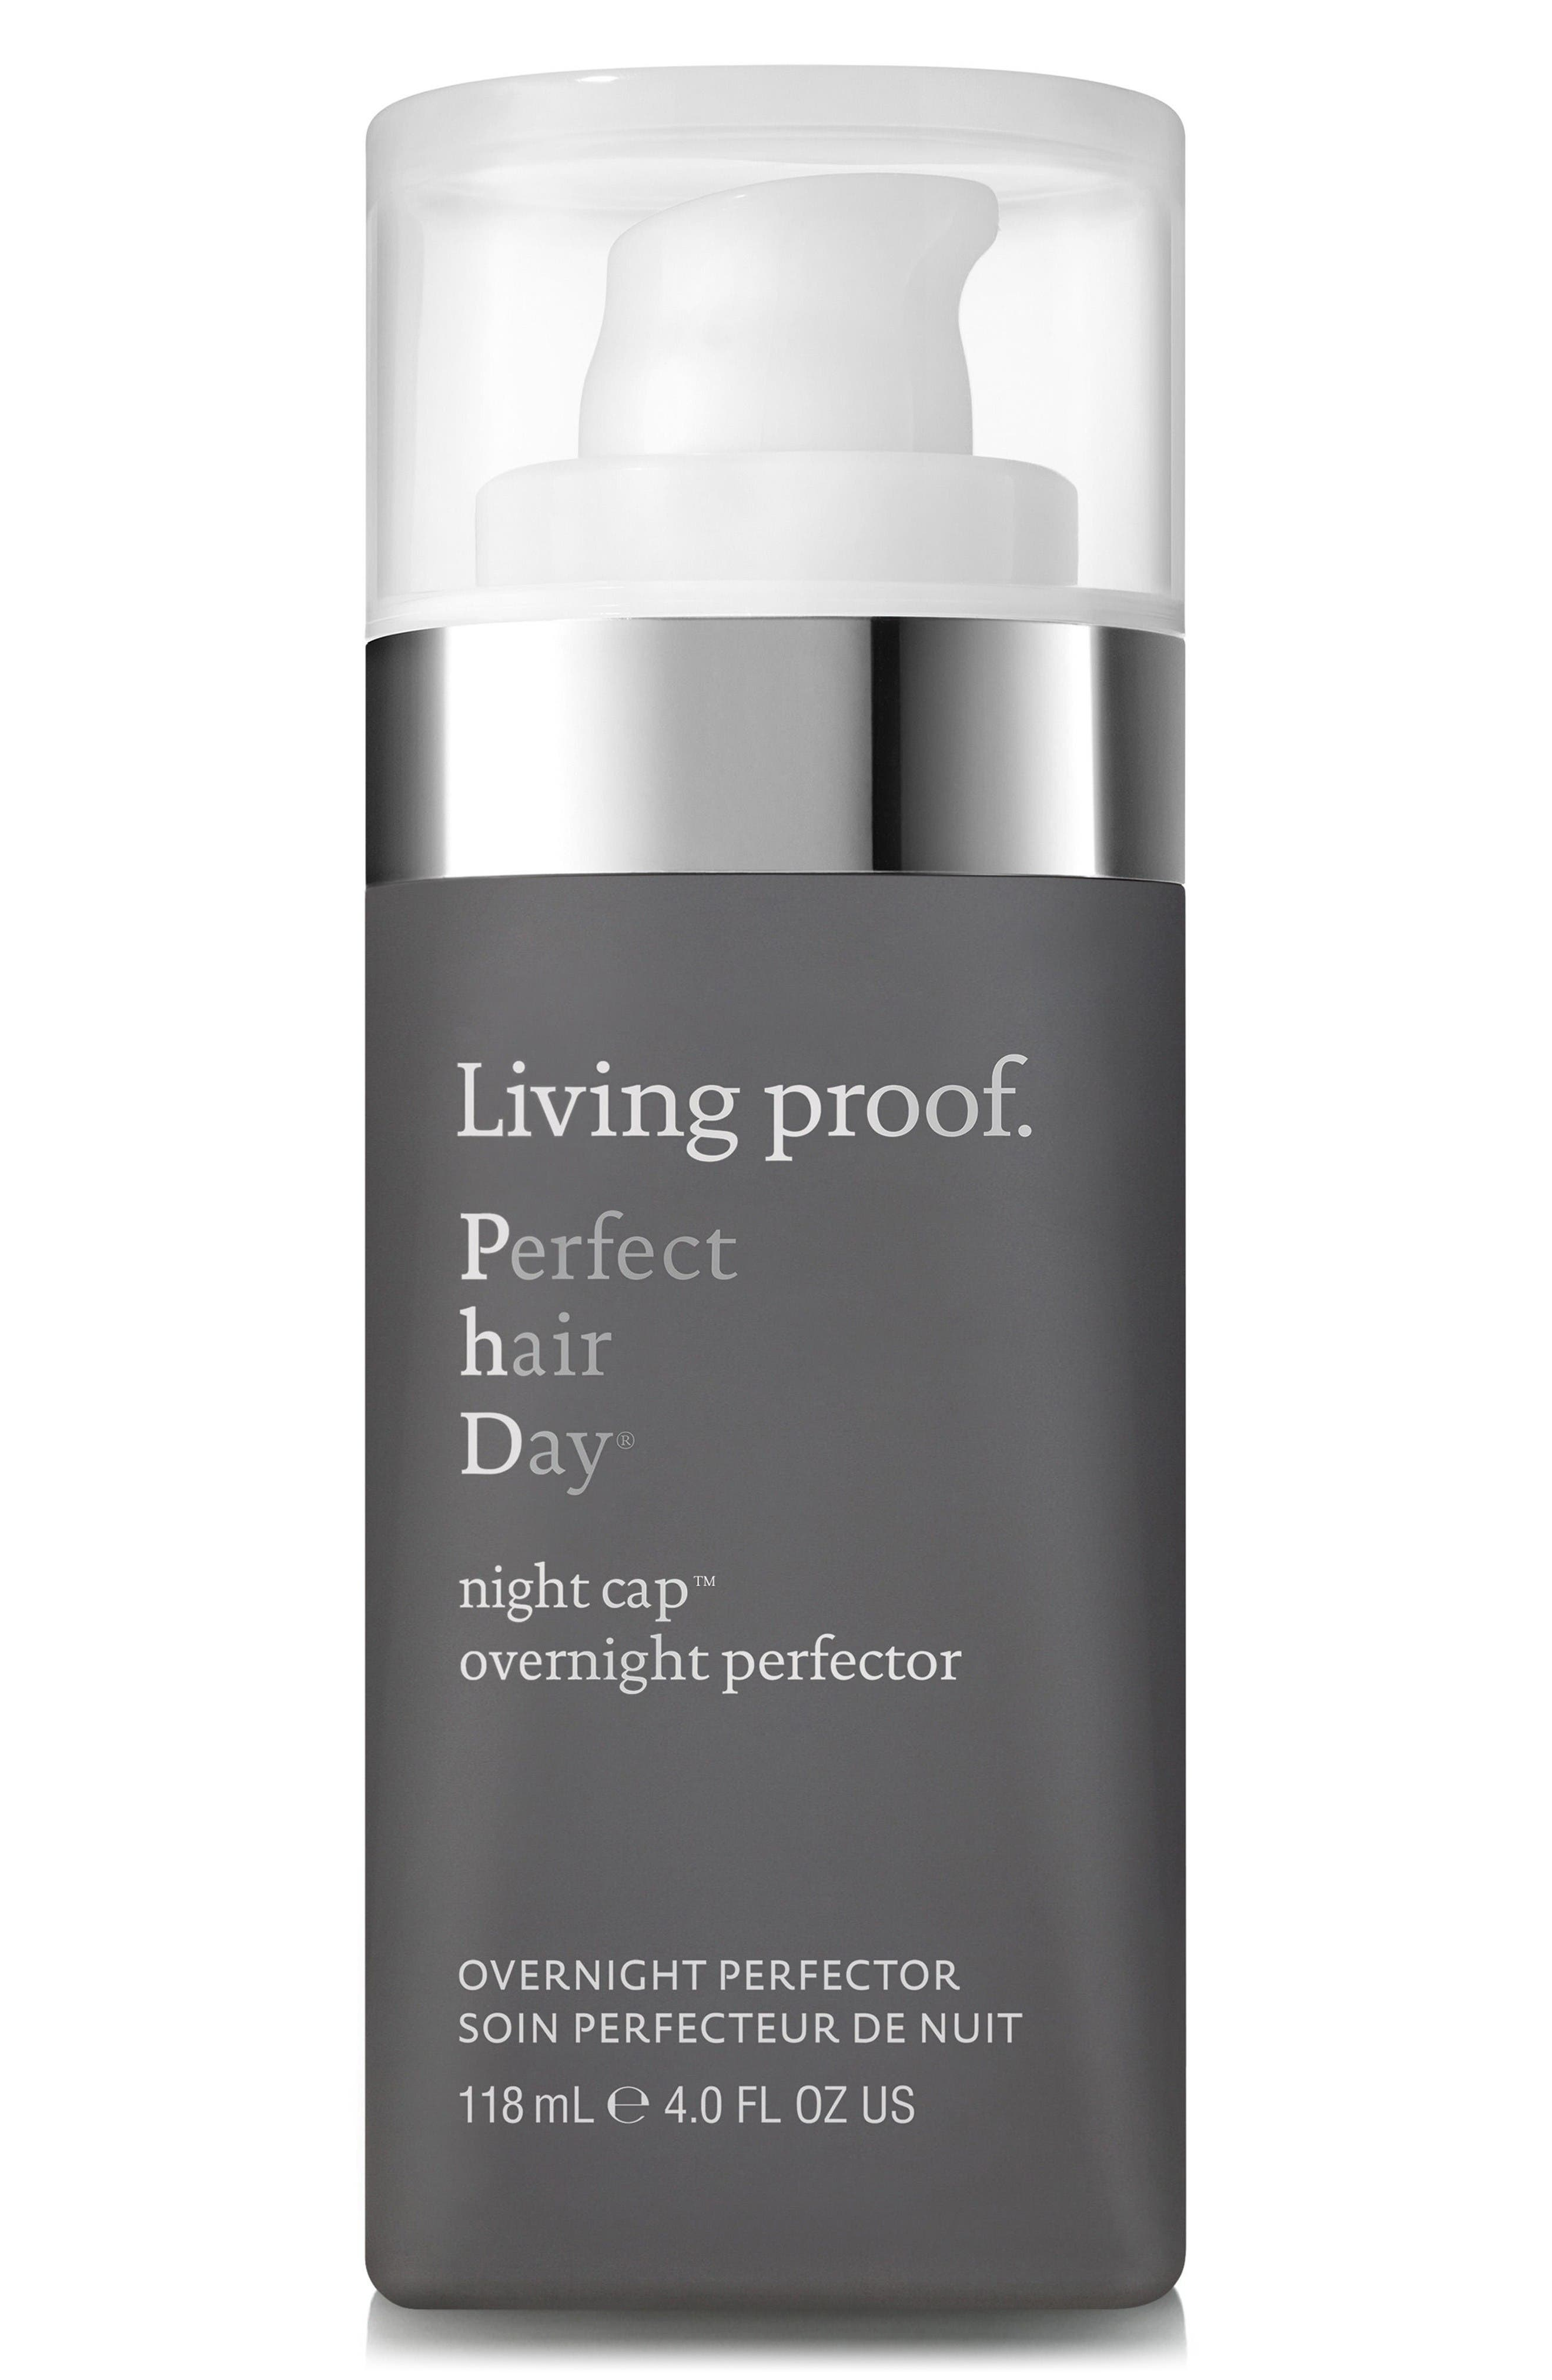 Main Image - Living proof® Perfect hair Day™ Night Cap Perfector